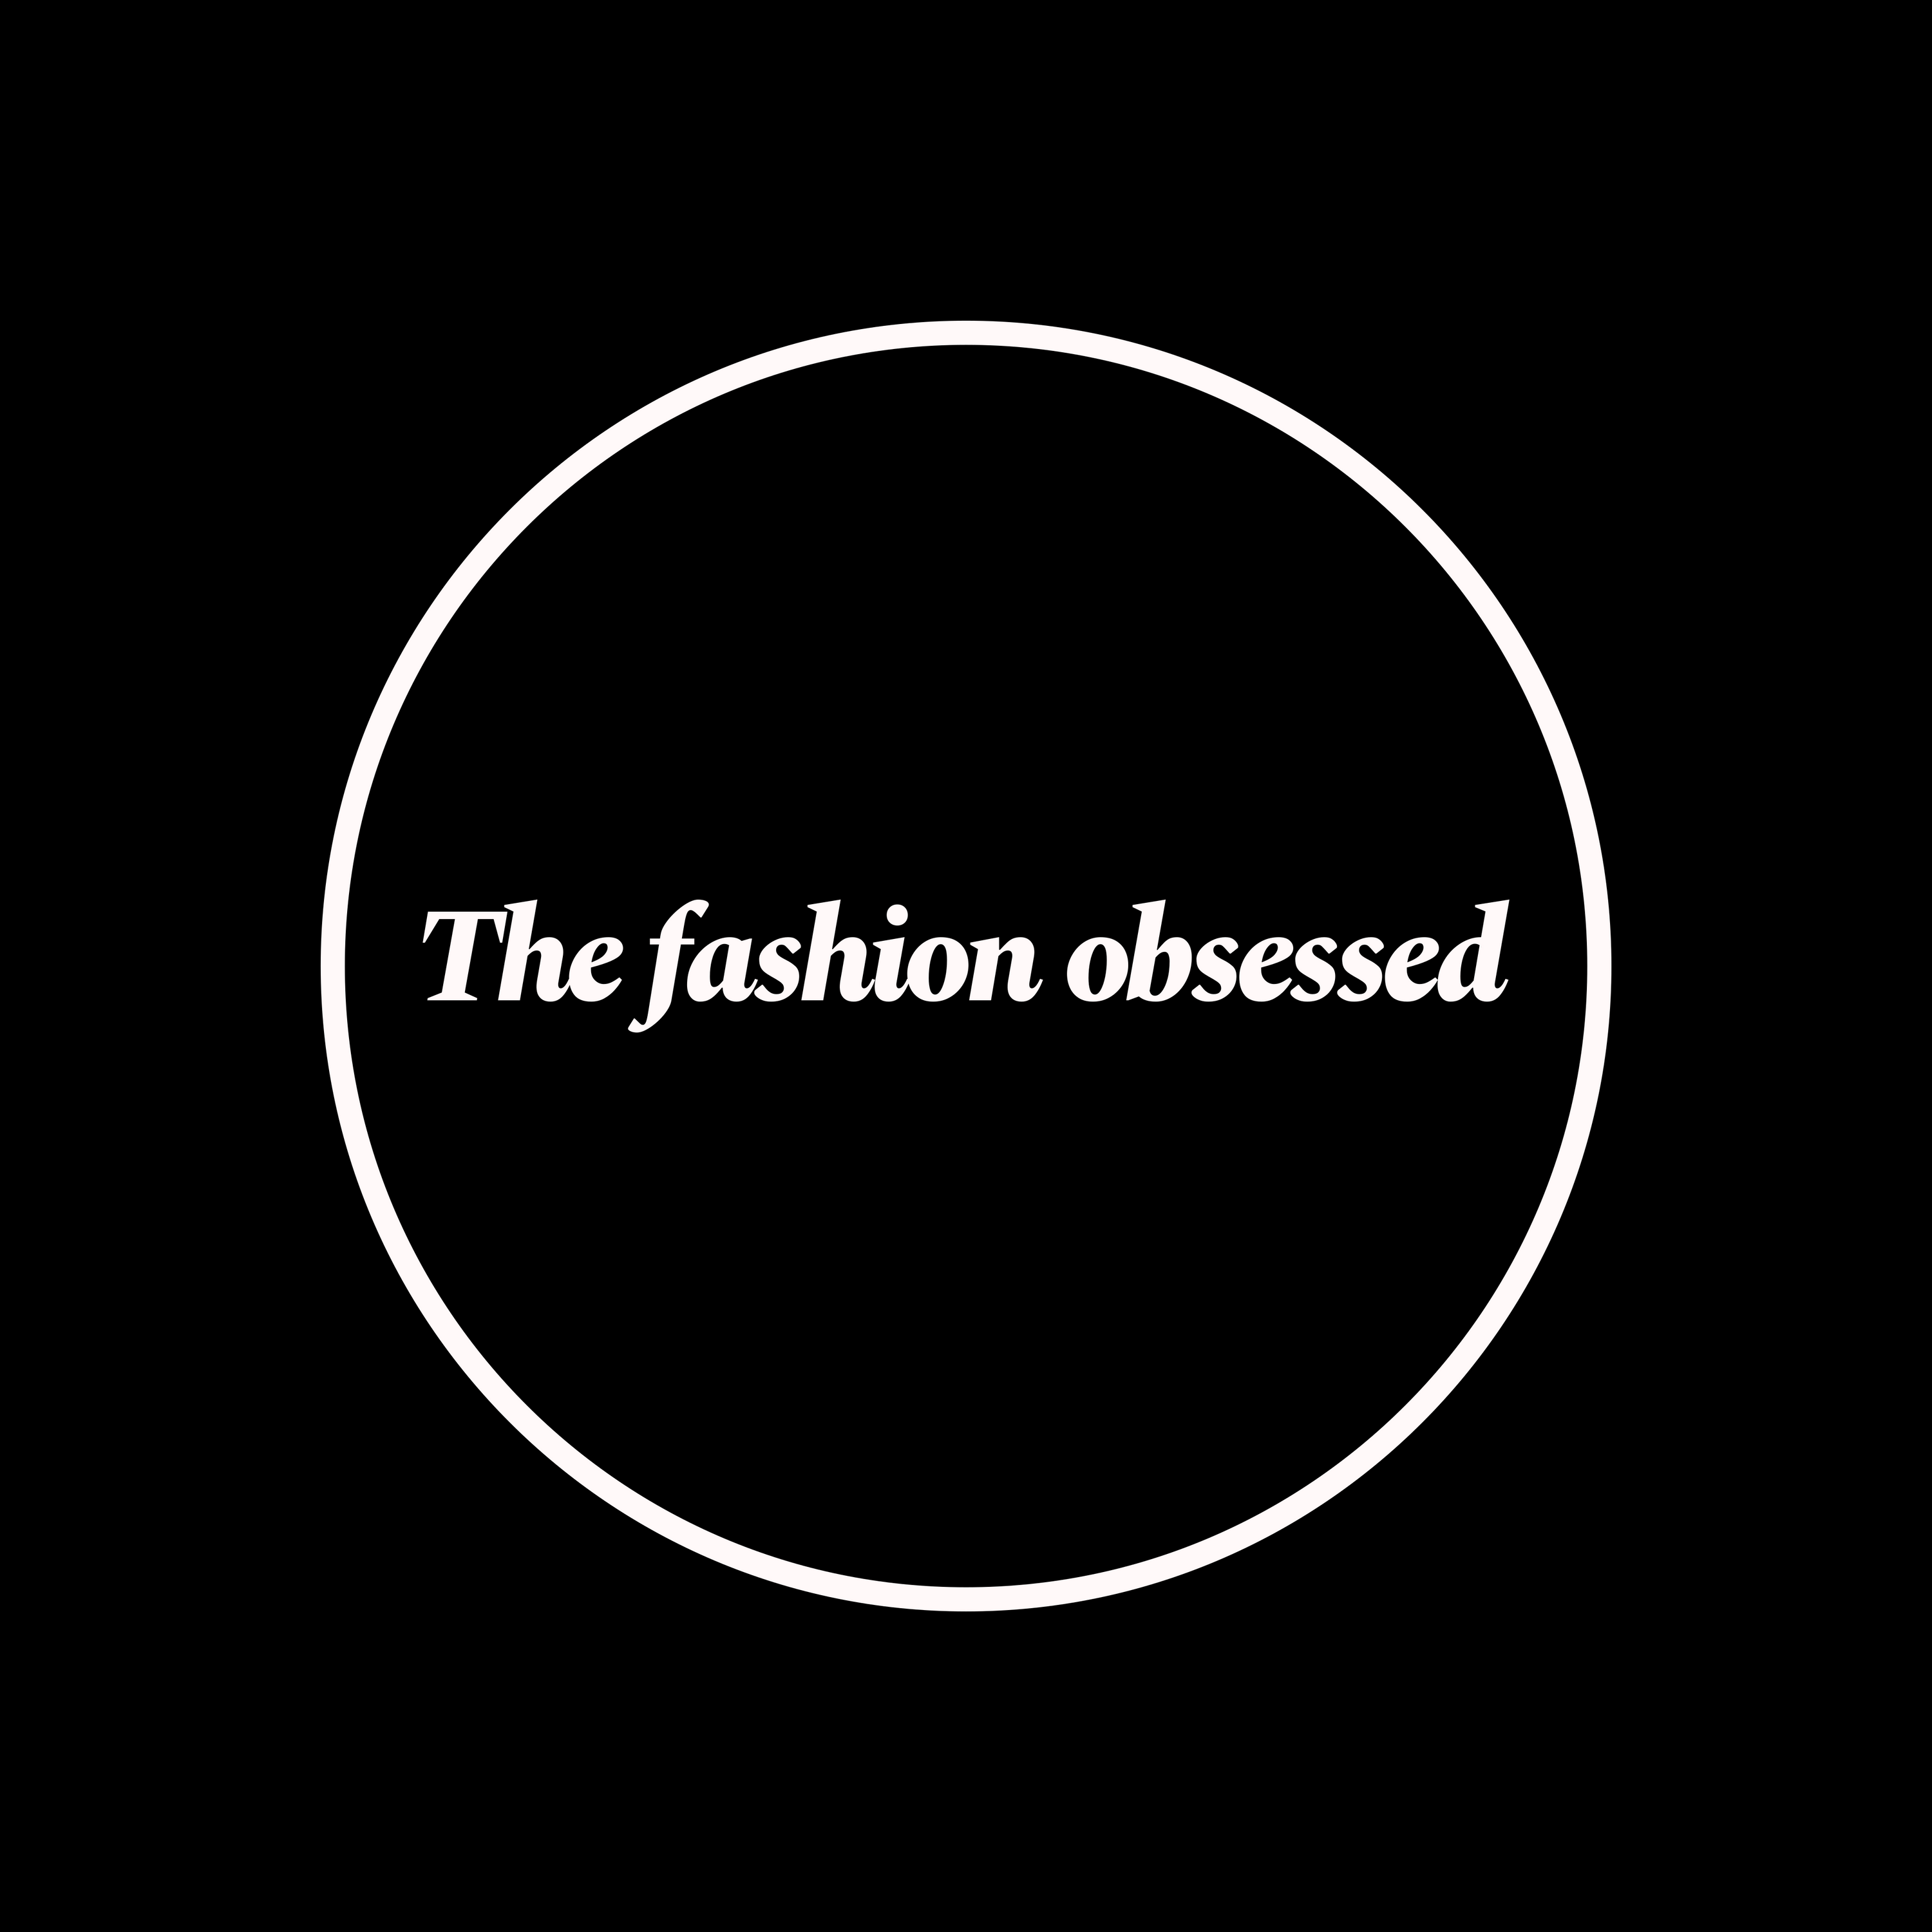 The fashion obsessed